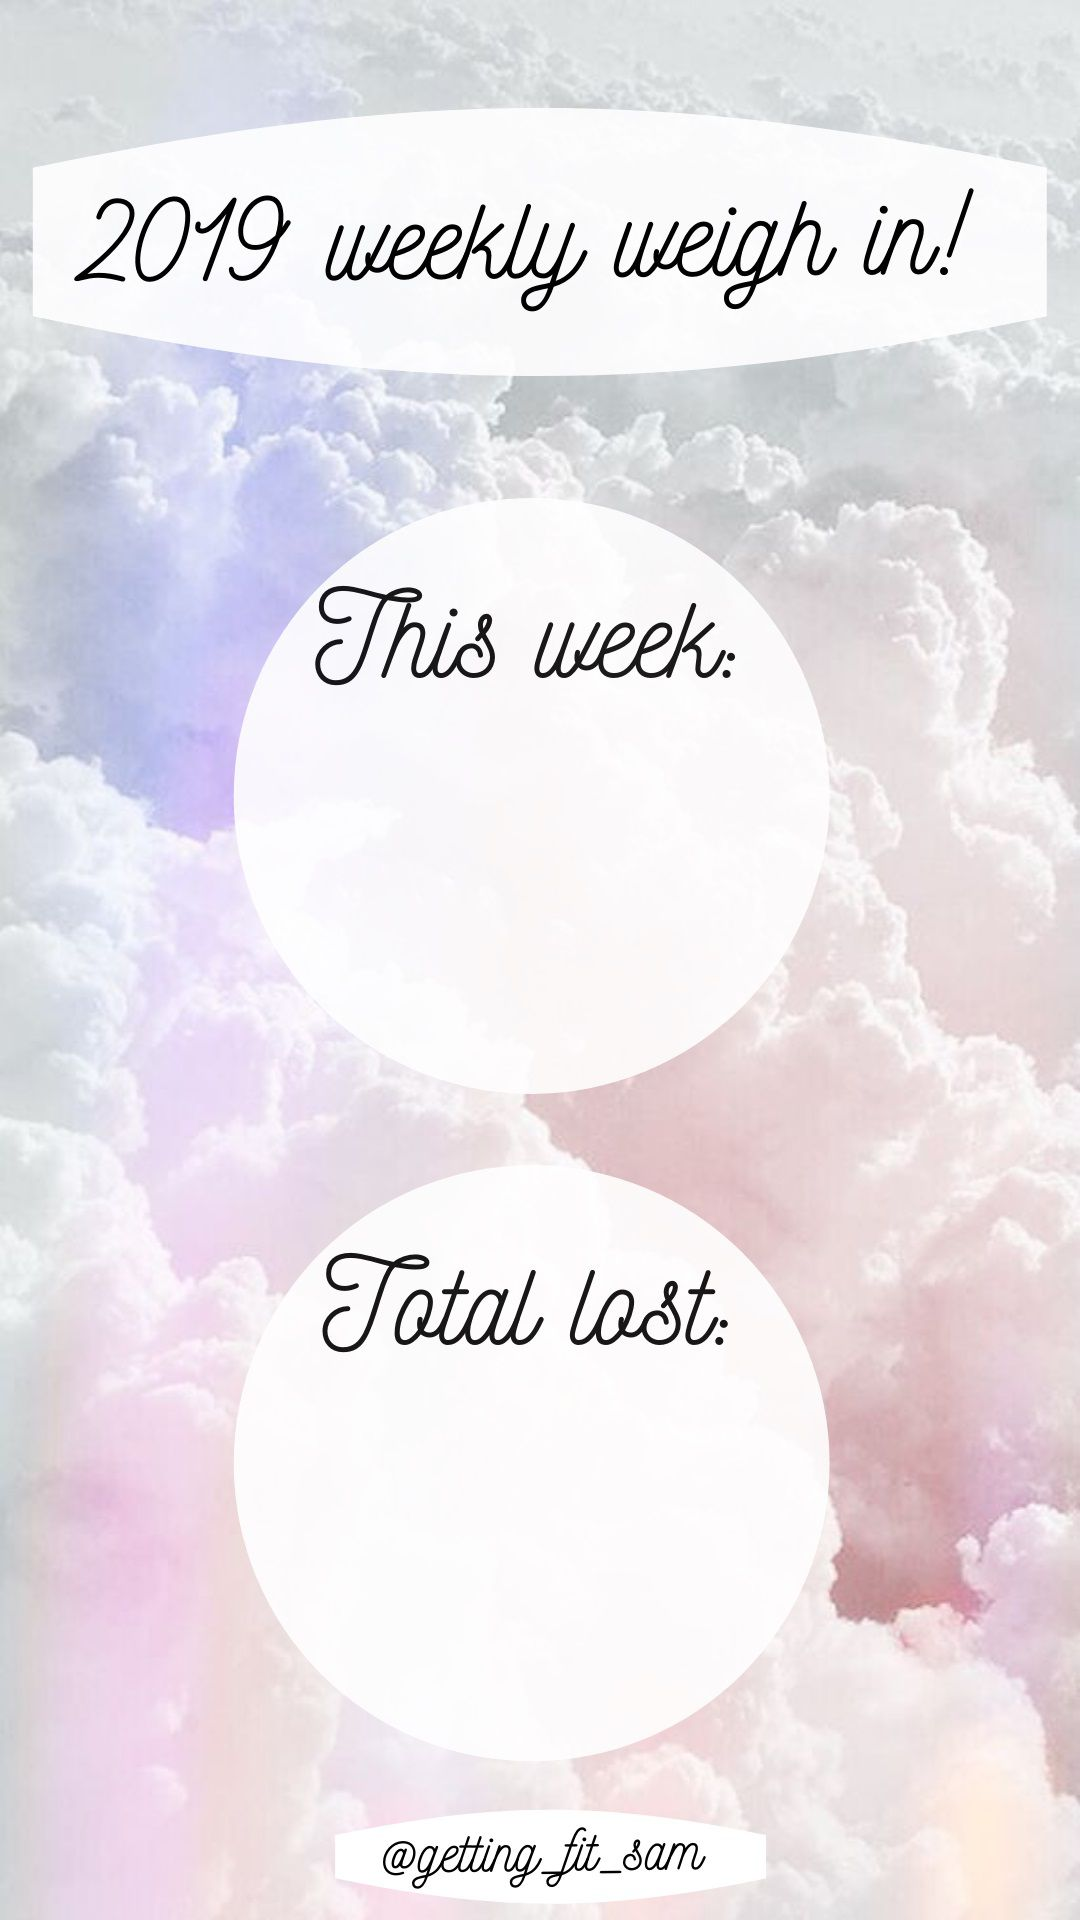 000 Amazing Weight Los Tracker Template Idea  Weekly In Thi Body I Live Instagram 2019 2020Full